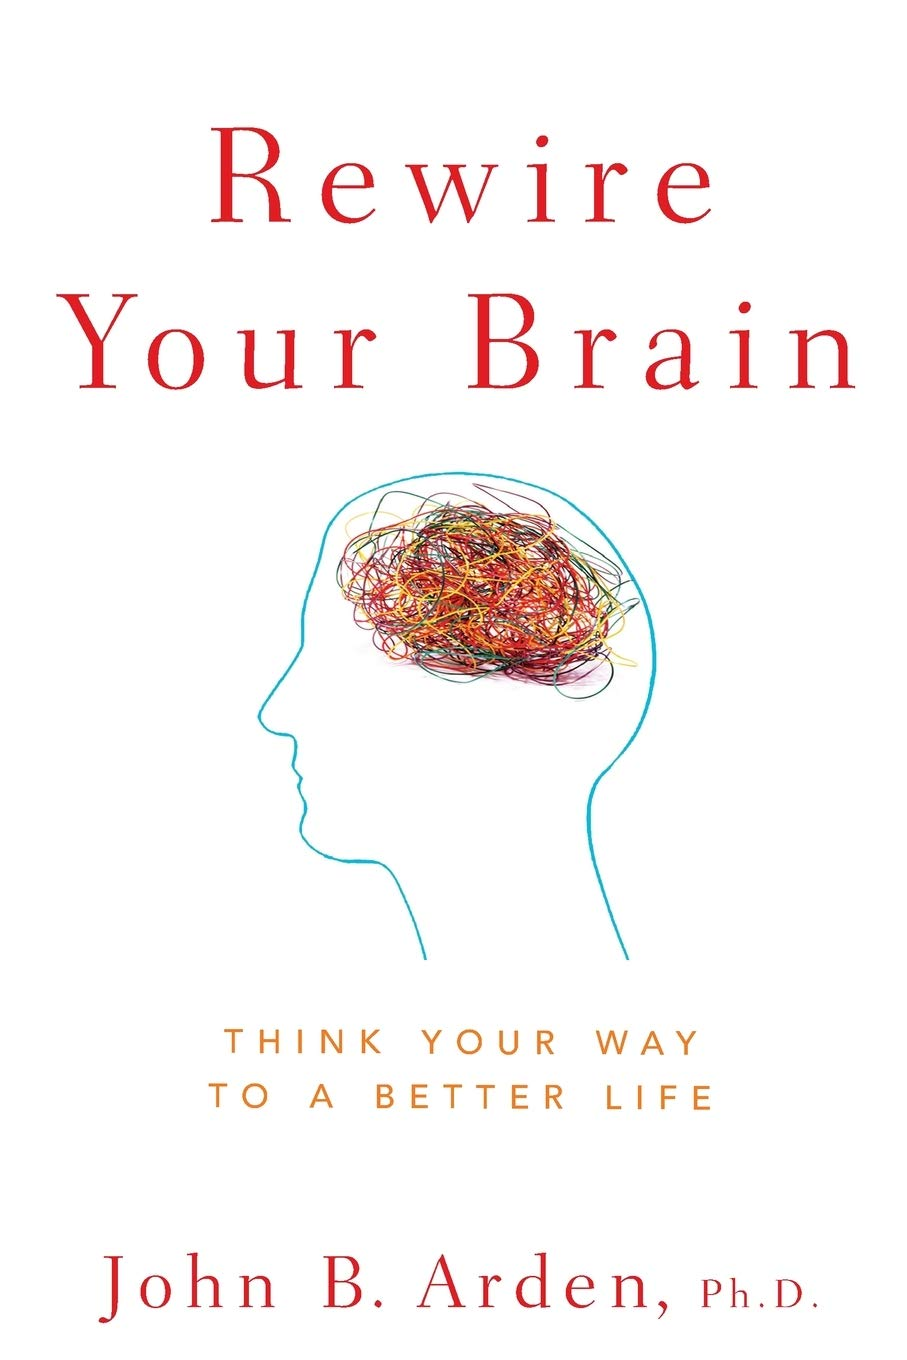 Download Rewire Your Brain Think Your Way To A Better Life By John B Arden